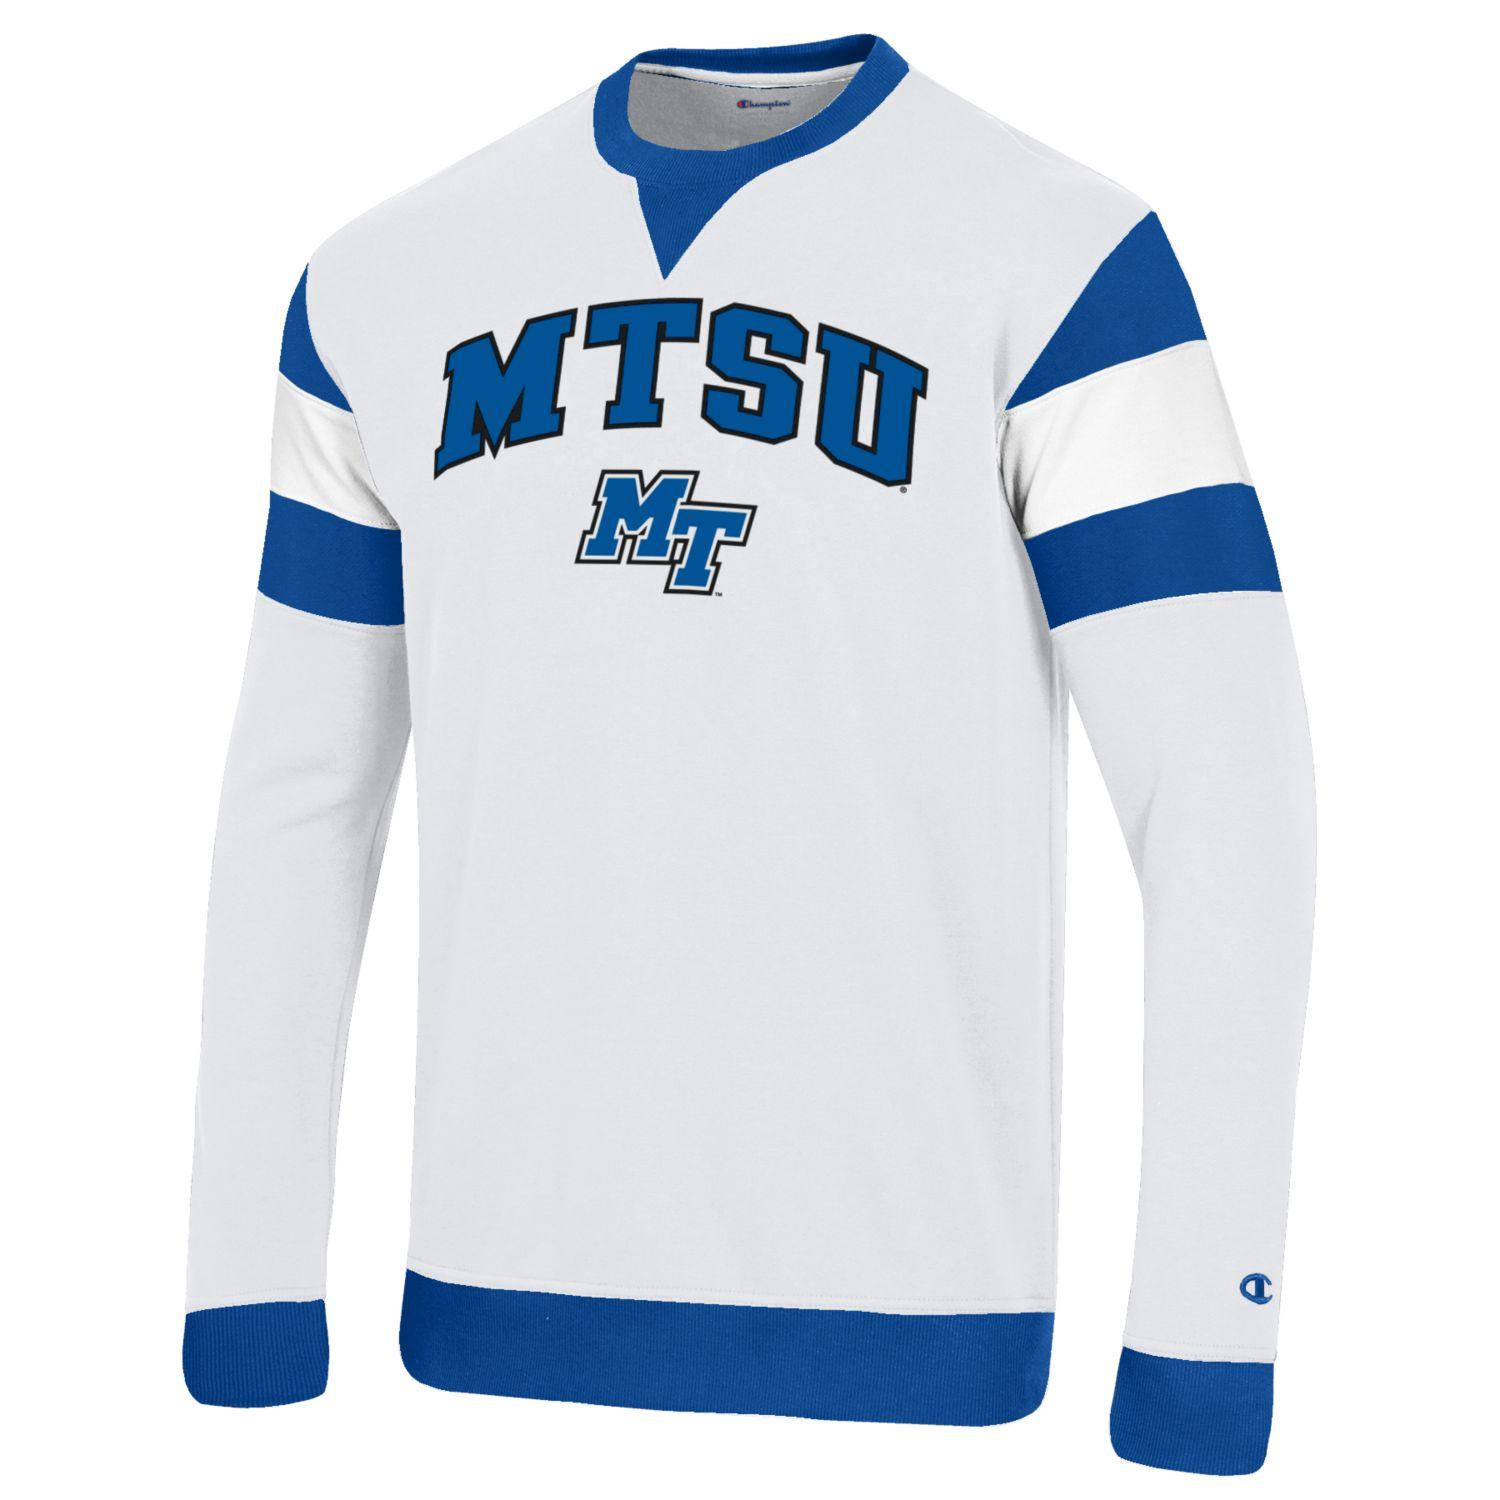 MTSU MT Logo Super Fan Sweatshirt